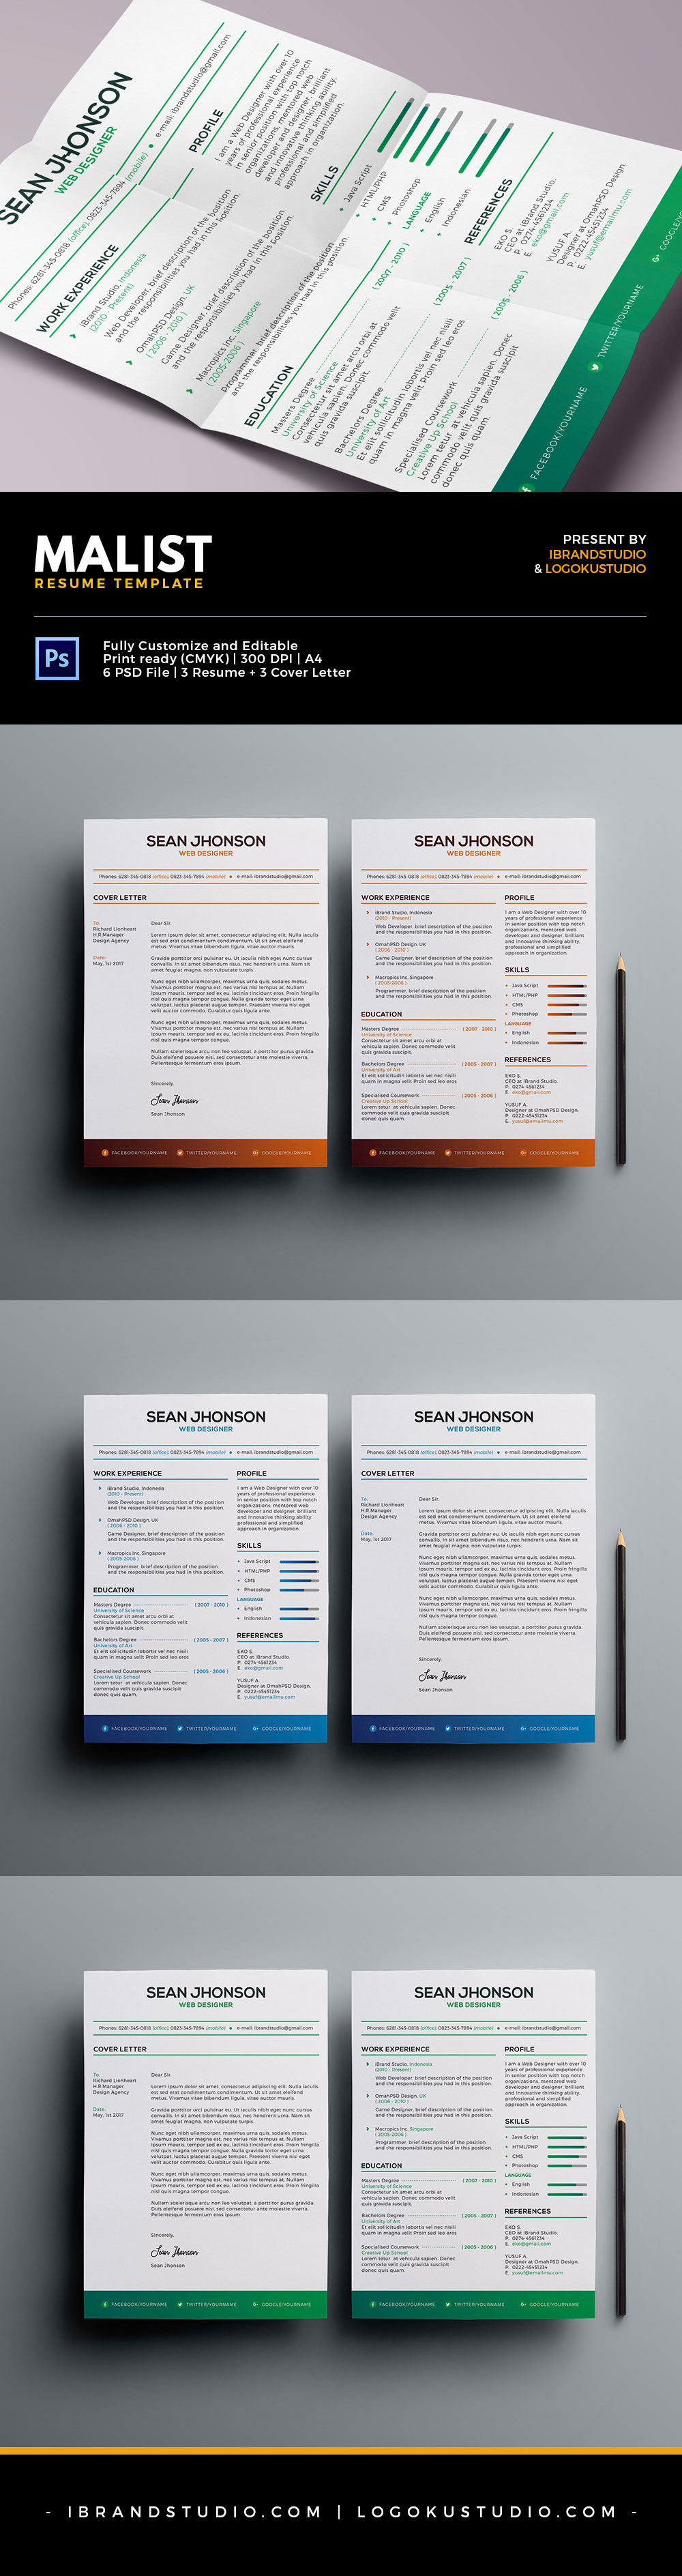 free malist resume template cover letter psd